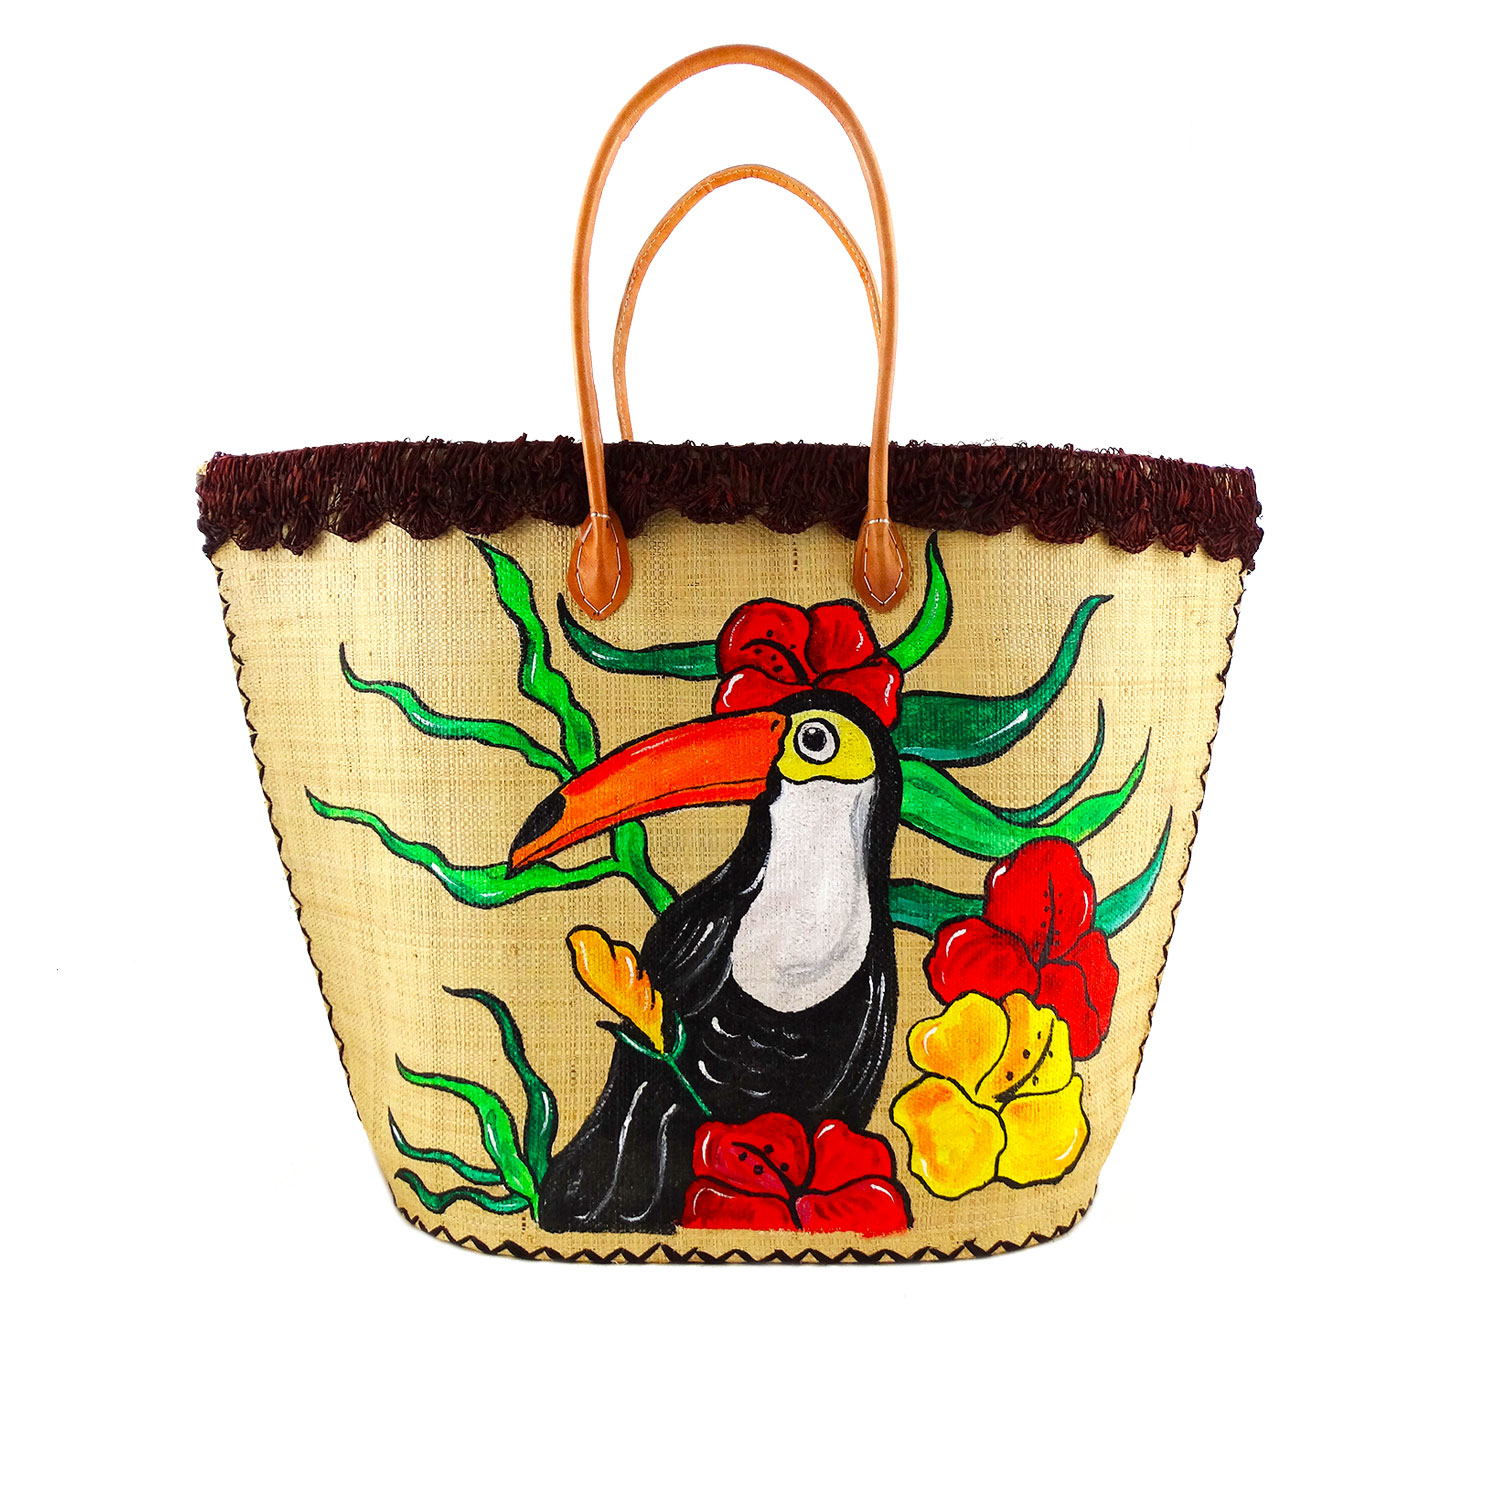 Hand-painted bag - Toucan